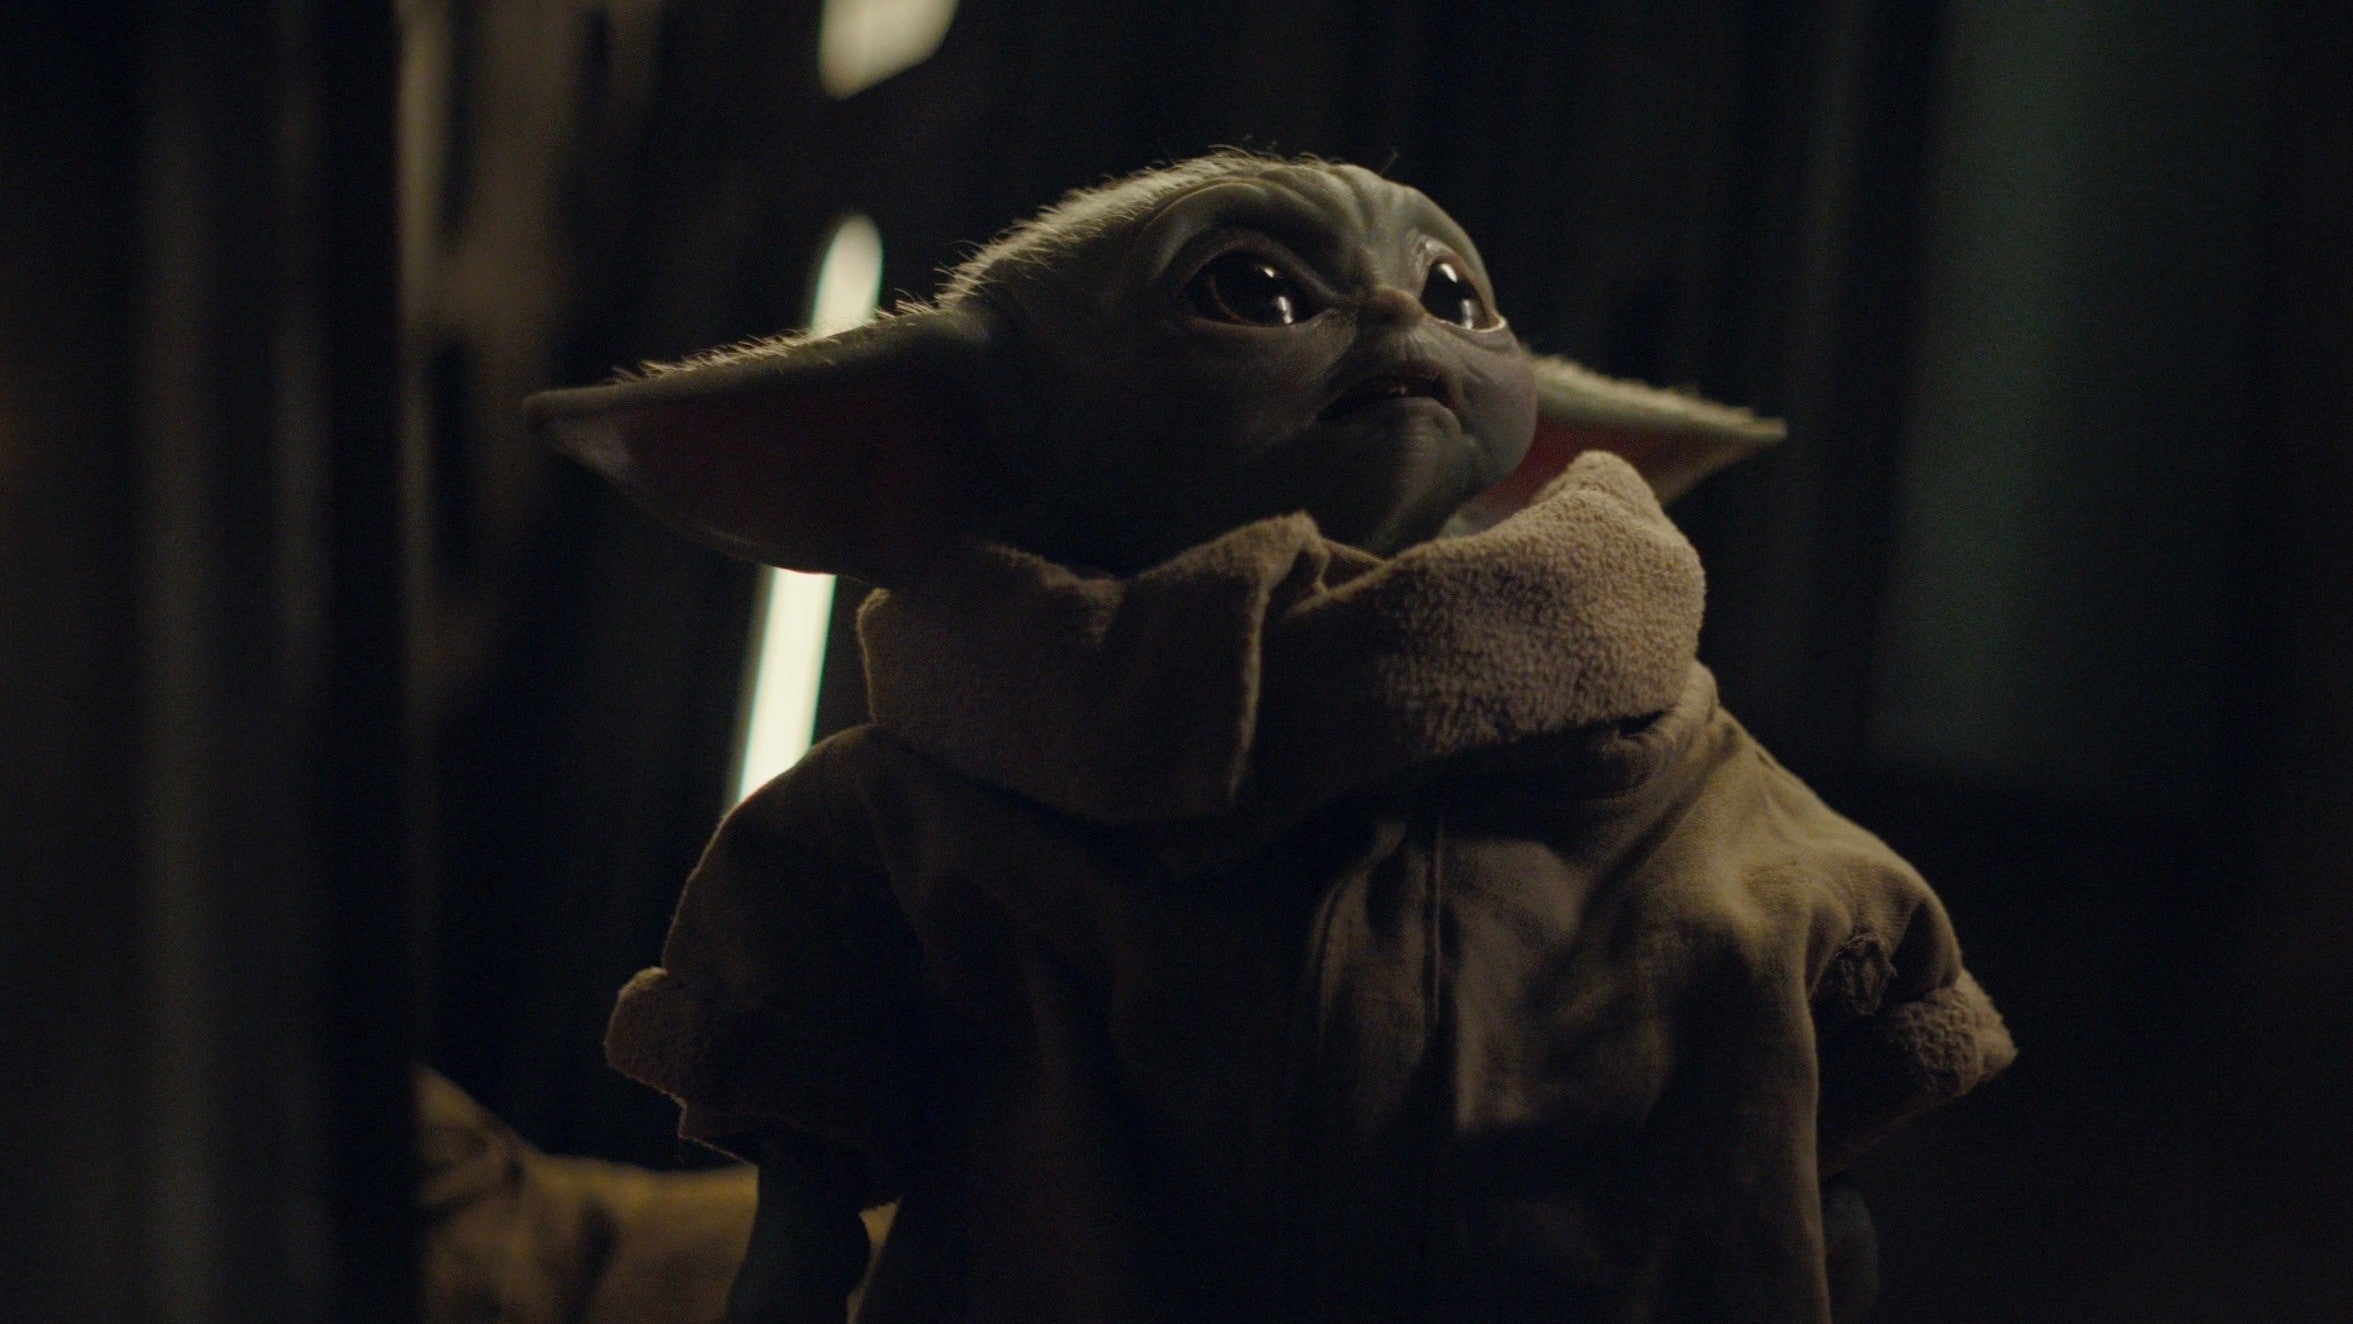 Things Take A Dramatic Turn For Baby Yoda In The Mandalorian's Penultimate Episode